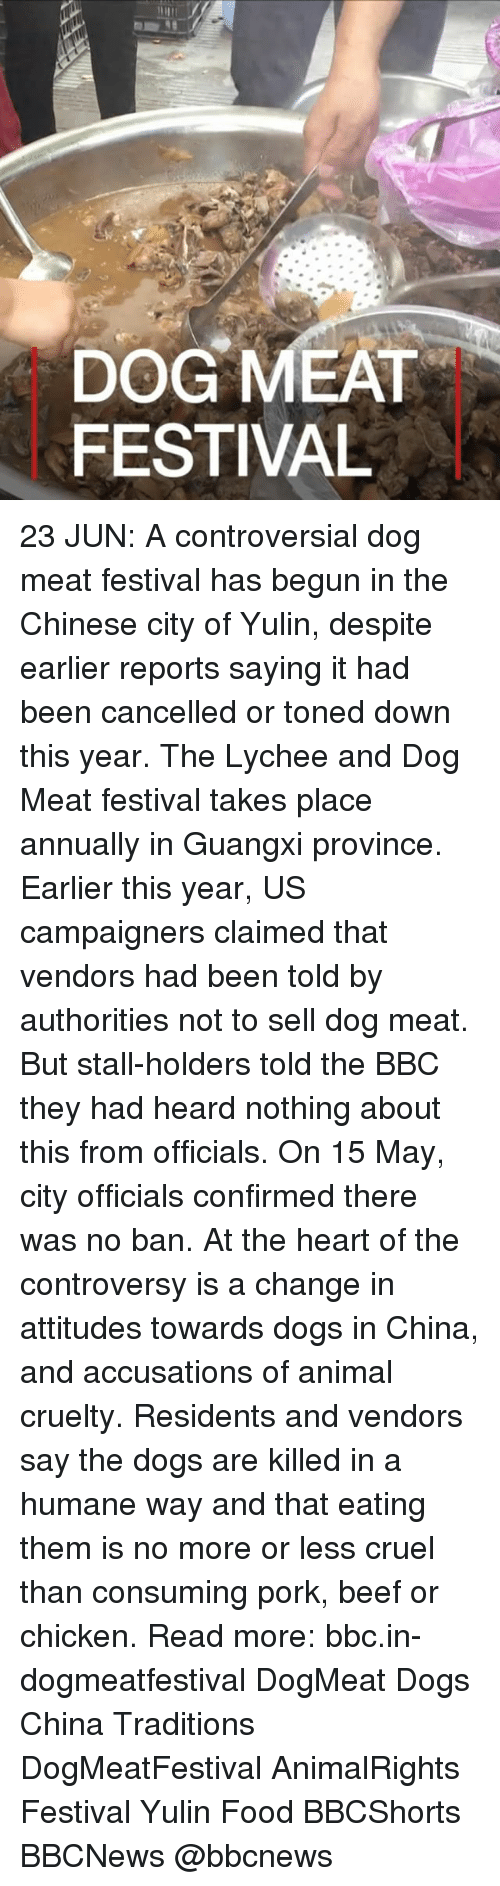 Porke: DOG MEAT  FESTIVAL 23 JUN: A controversial dog meat festival has begun in the Chinese city of Yulin, despite earlier reports saying it had been cancelled or toned down this year. The Lychee and Dog Meat festival takes place annually in Guangxi province. Earlier this year, US campaigners claimed that vendors had been told by authorities not to sell dog meat. But stall-holders told the BBC they had heard nothing about this from officials. On 15 May, city officials confirmed there was no ban. At the heart of the controversy is a change in attitudes towards dogs in China, and accusations of animal cruelty. Residents and vendors say the dogs are killed in a humane way and that eating them is no more or less cruel than consuming pork, beef or chicken. Read more: bbc.in-dogmeatfestival DogMeat Dogs China Traditions DogMeatFestival AnimalRights Festival Yulin Food BBCShorts BBCNews @bbcnews